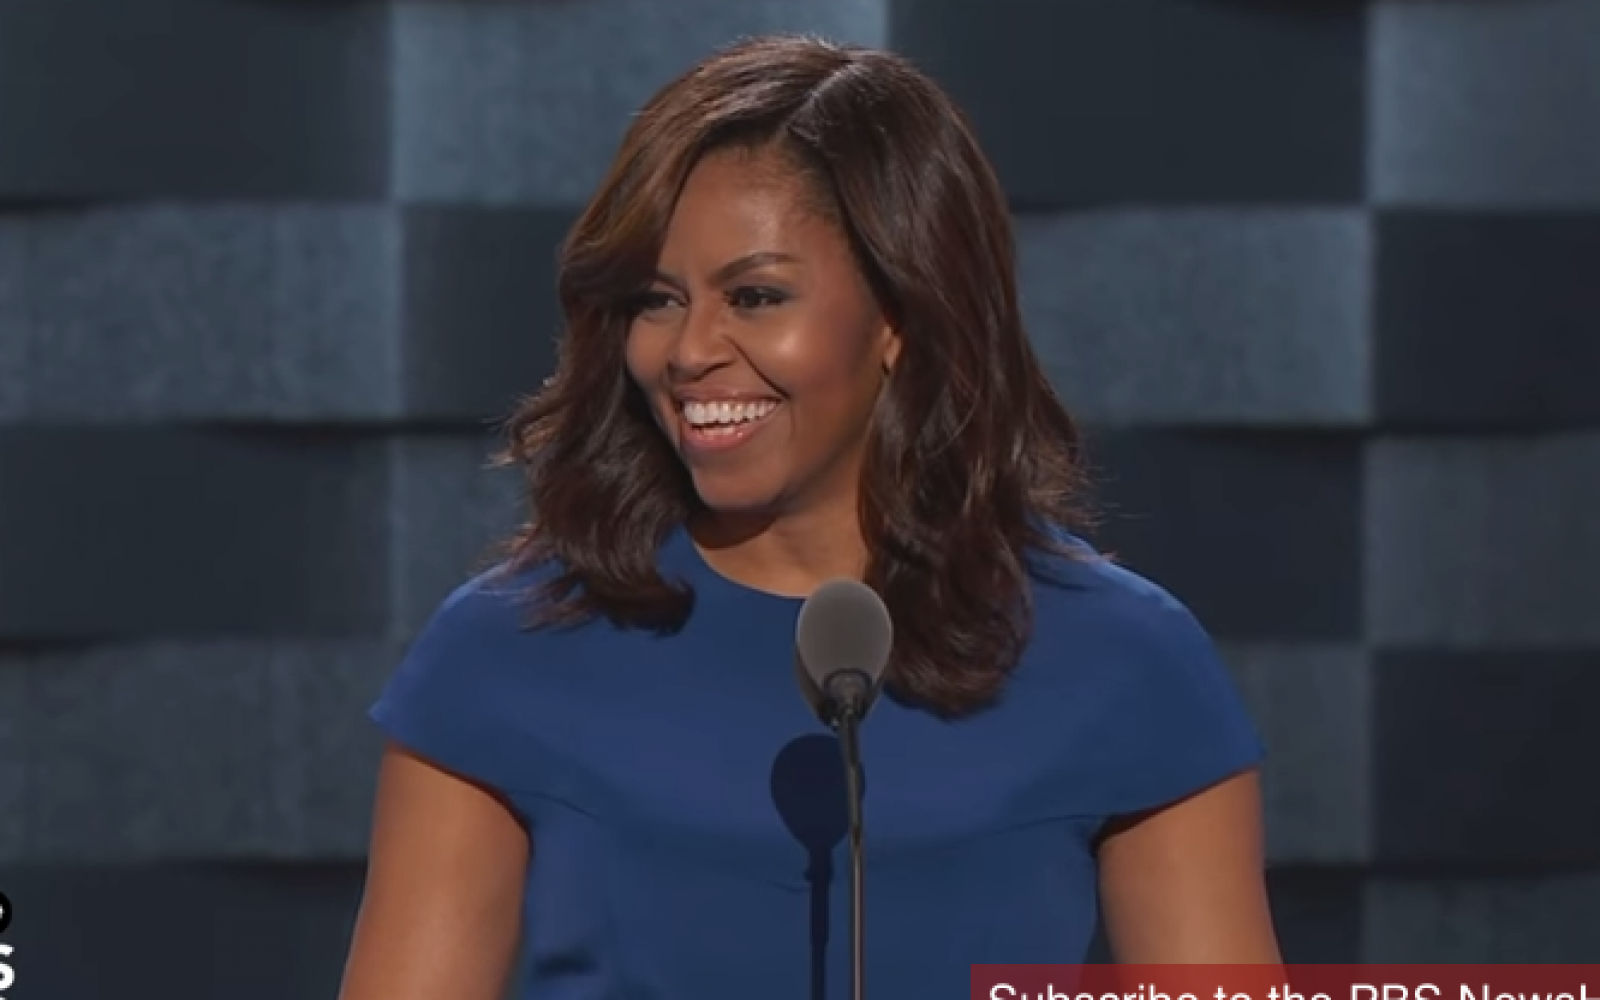 20 Quotes That Show Exactly Why Michelle Obama Was A Truly Iconic First Lady